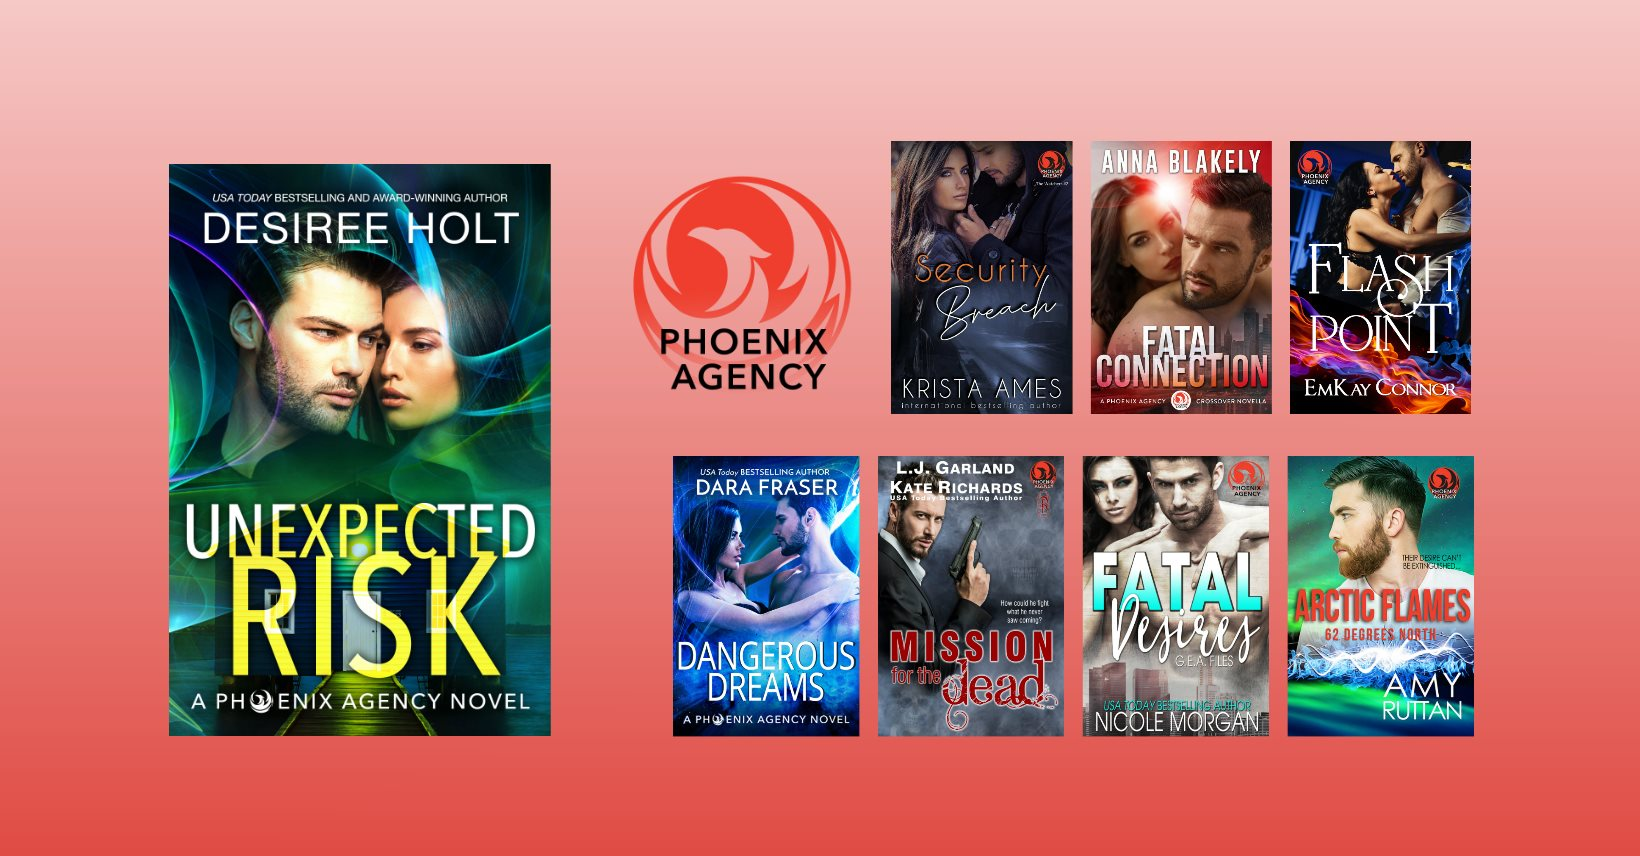 February 28, 2020: New Phoenix Agency World Releases